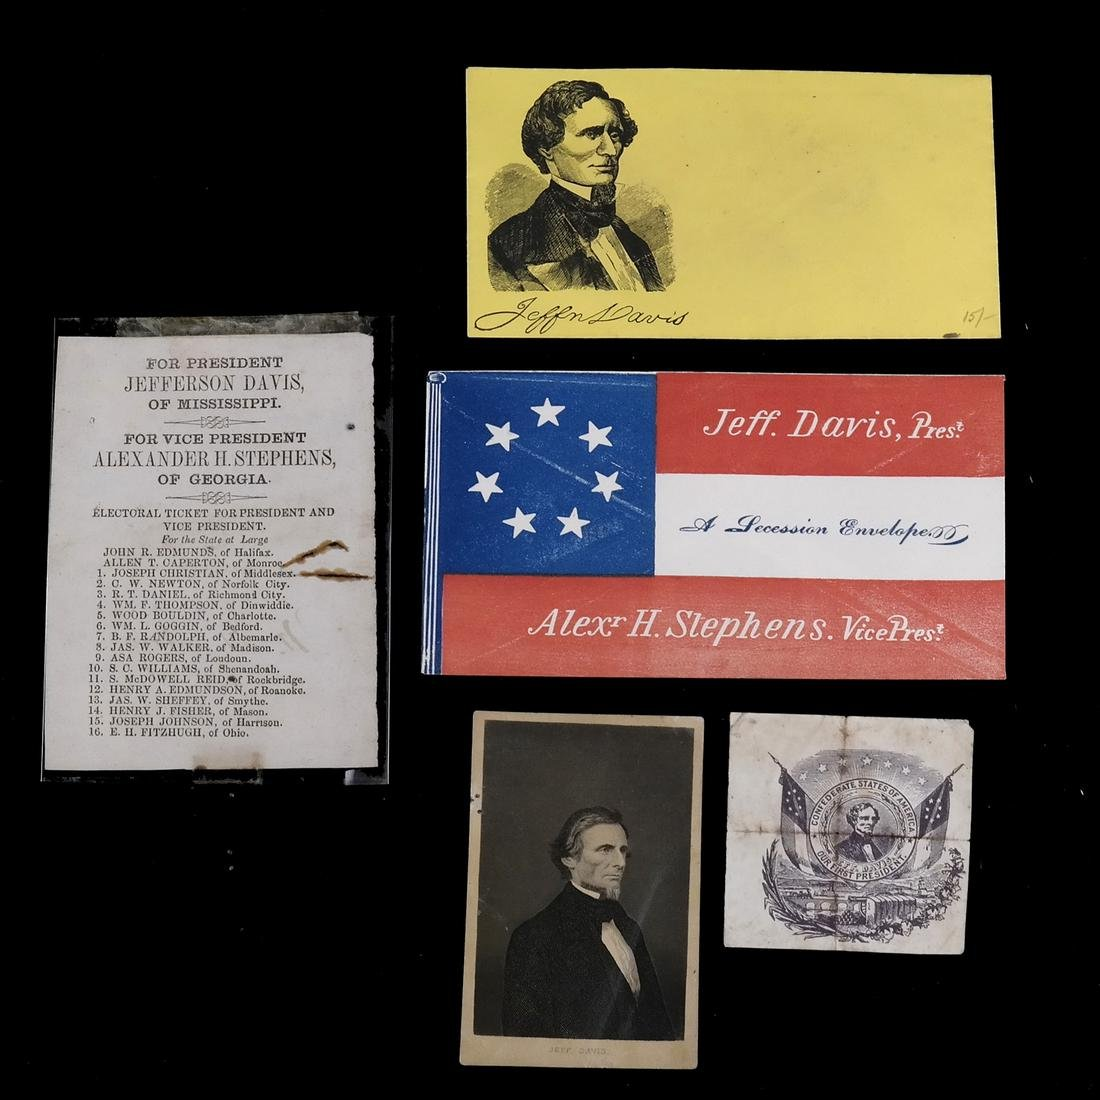 JEFFERSON DAVIS - 1861 BALLOT, POSTAL COVERS, & OTHERS